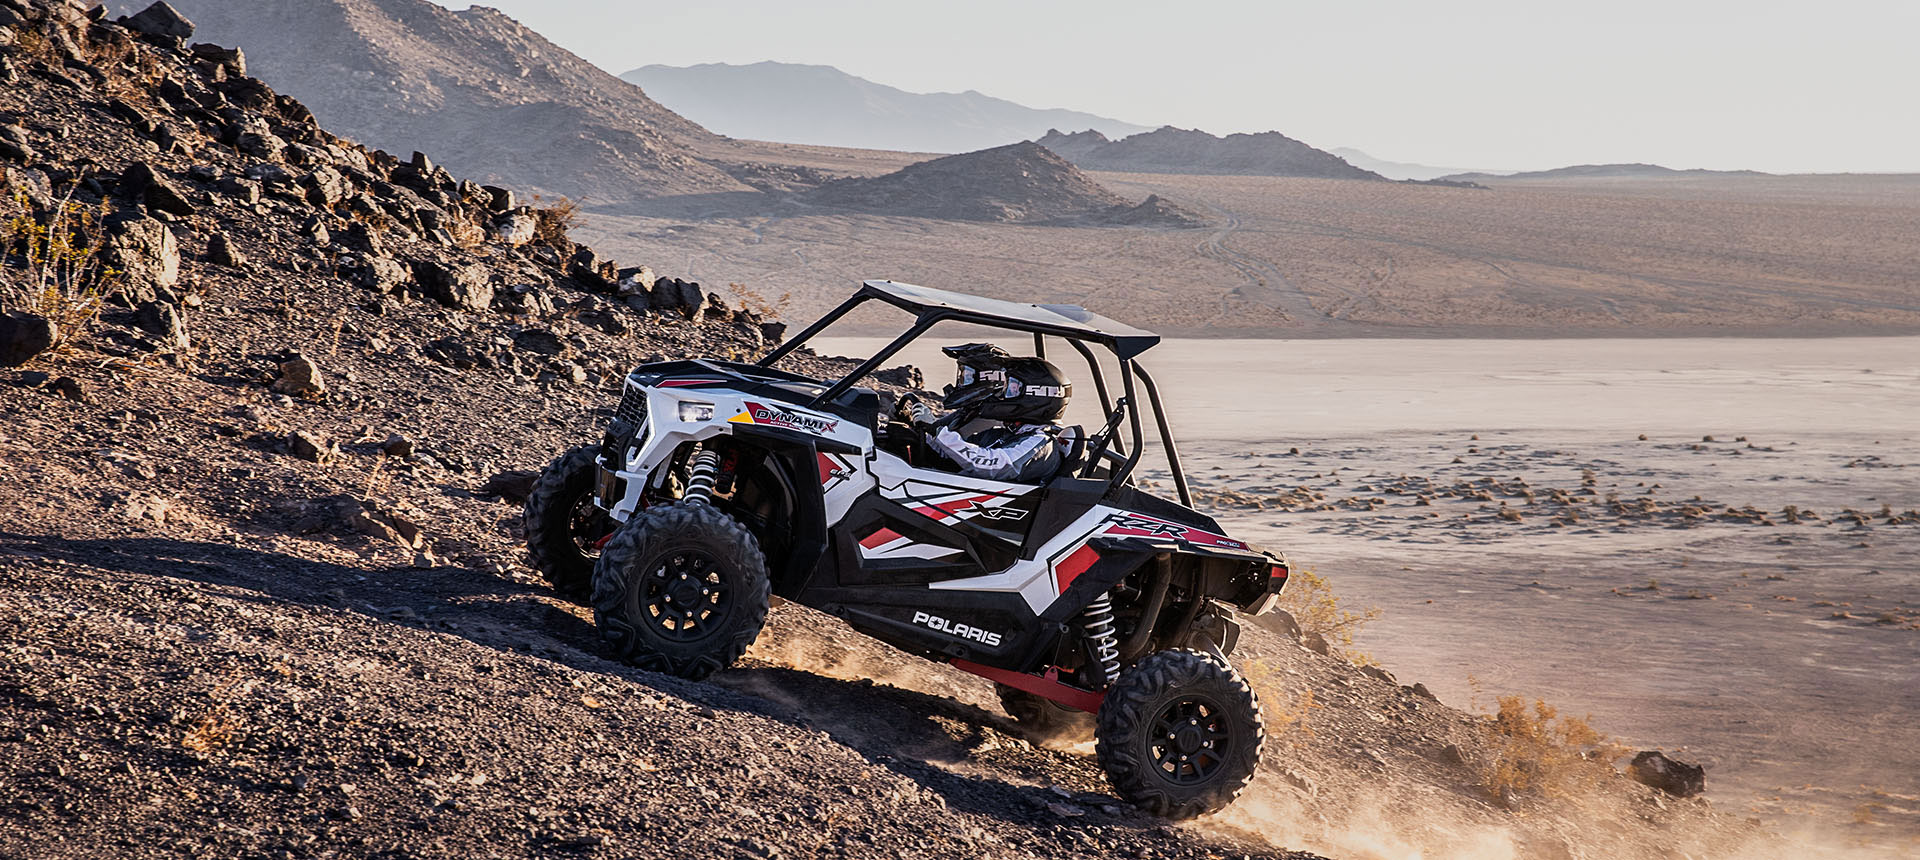 2019 Polaris RZR XP 1000 in Logan, Utah - Photo 5